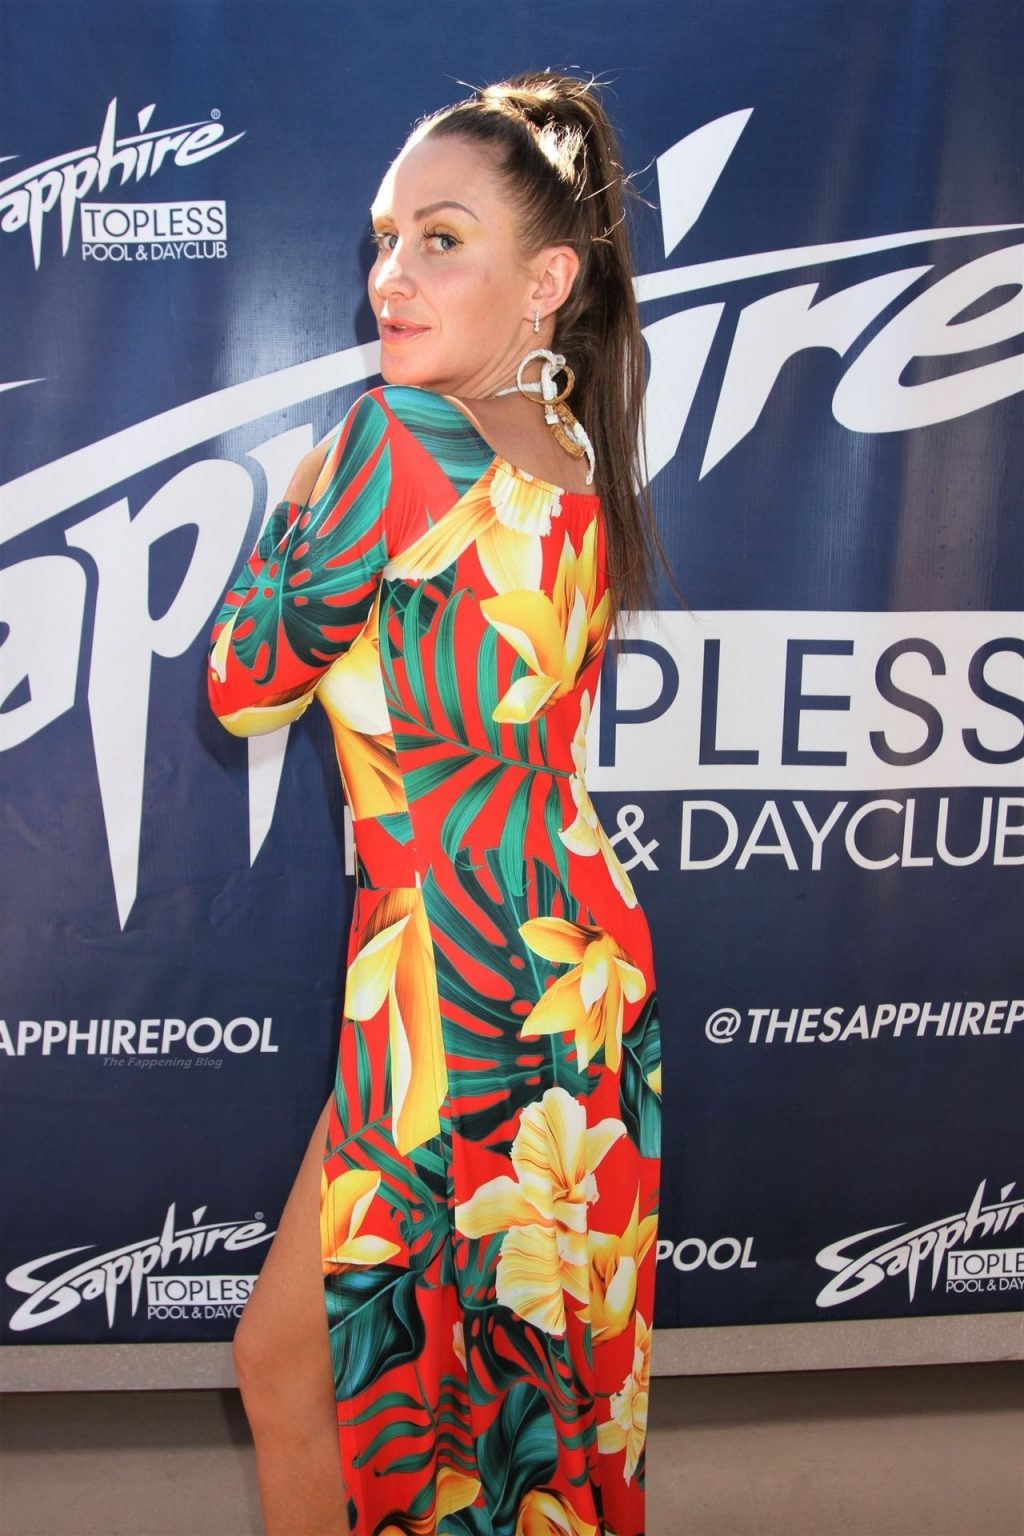 Hayley Bray Gets Cheeky at Sapphire Pool and Dayclub (30 Photos)